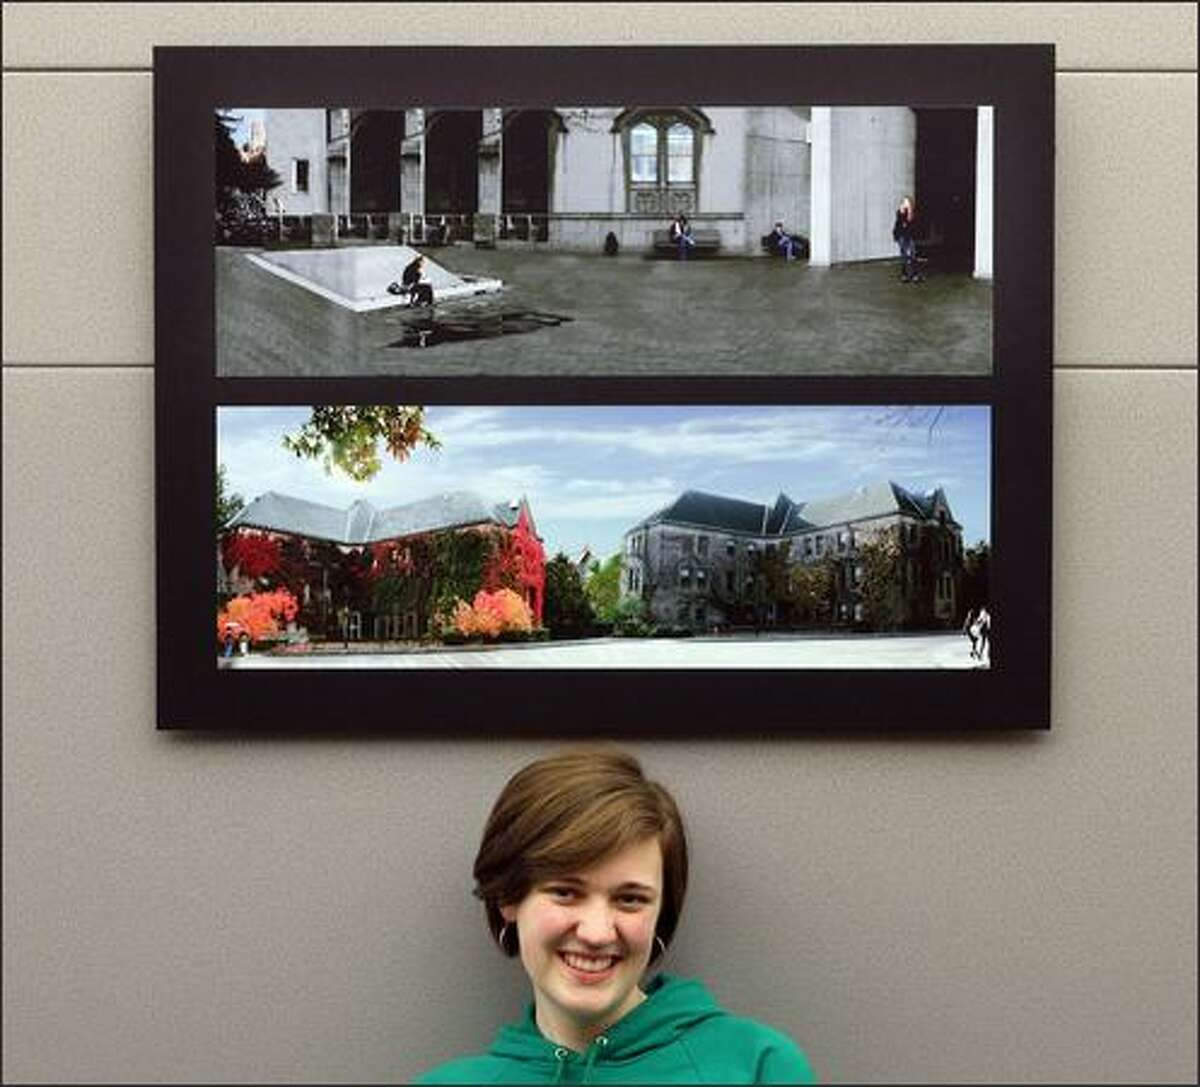 Molly Blank, a University of Washington freshman from Bellevue, Wash., poses with her photographs at UW's Odegaard Undergraduate Library in Seattle. Blank is among a group of freshmen who made photo essays about their first quarter in college.